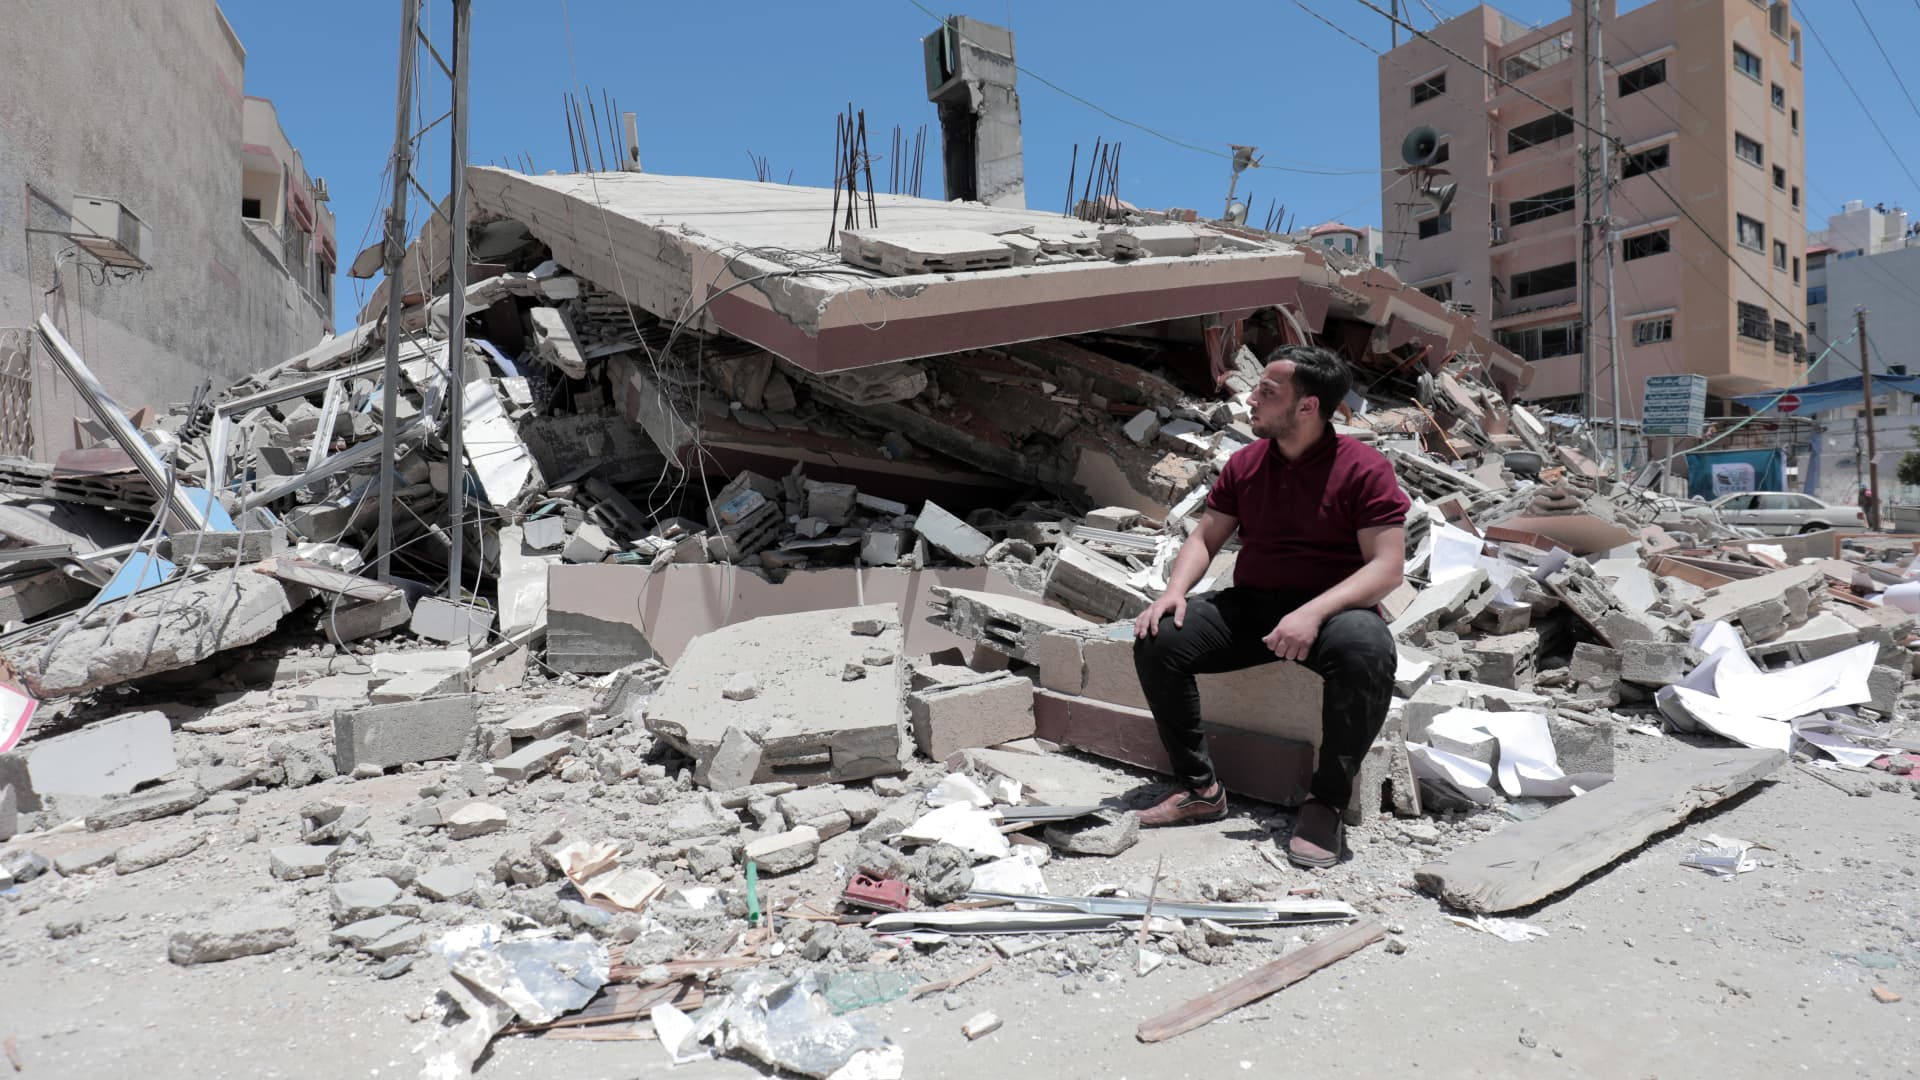 A demolished 6-storey building in Al-Rimal neighborhood contains libraries, youth centers, training for university students, and a mosque that was bombed by Israeli aircraft in raids in Gaza City, Gaza, on May 18, 2021.